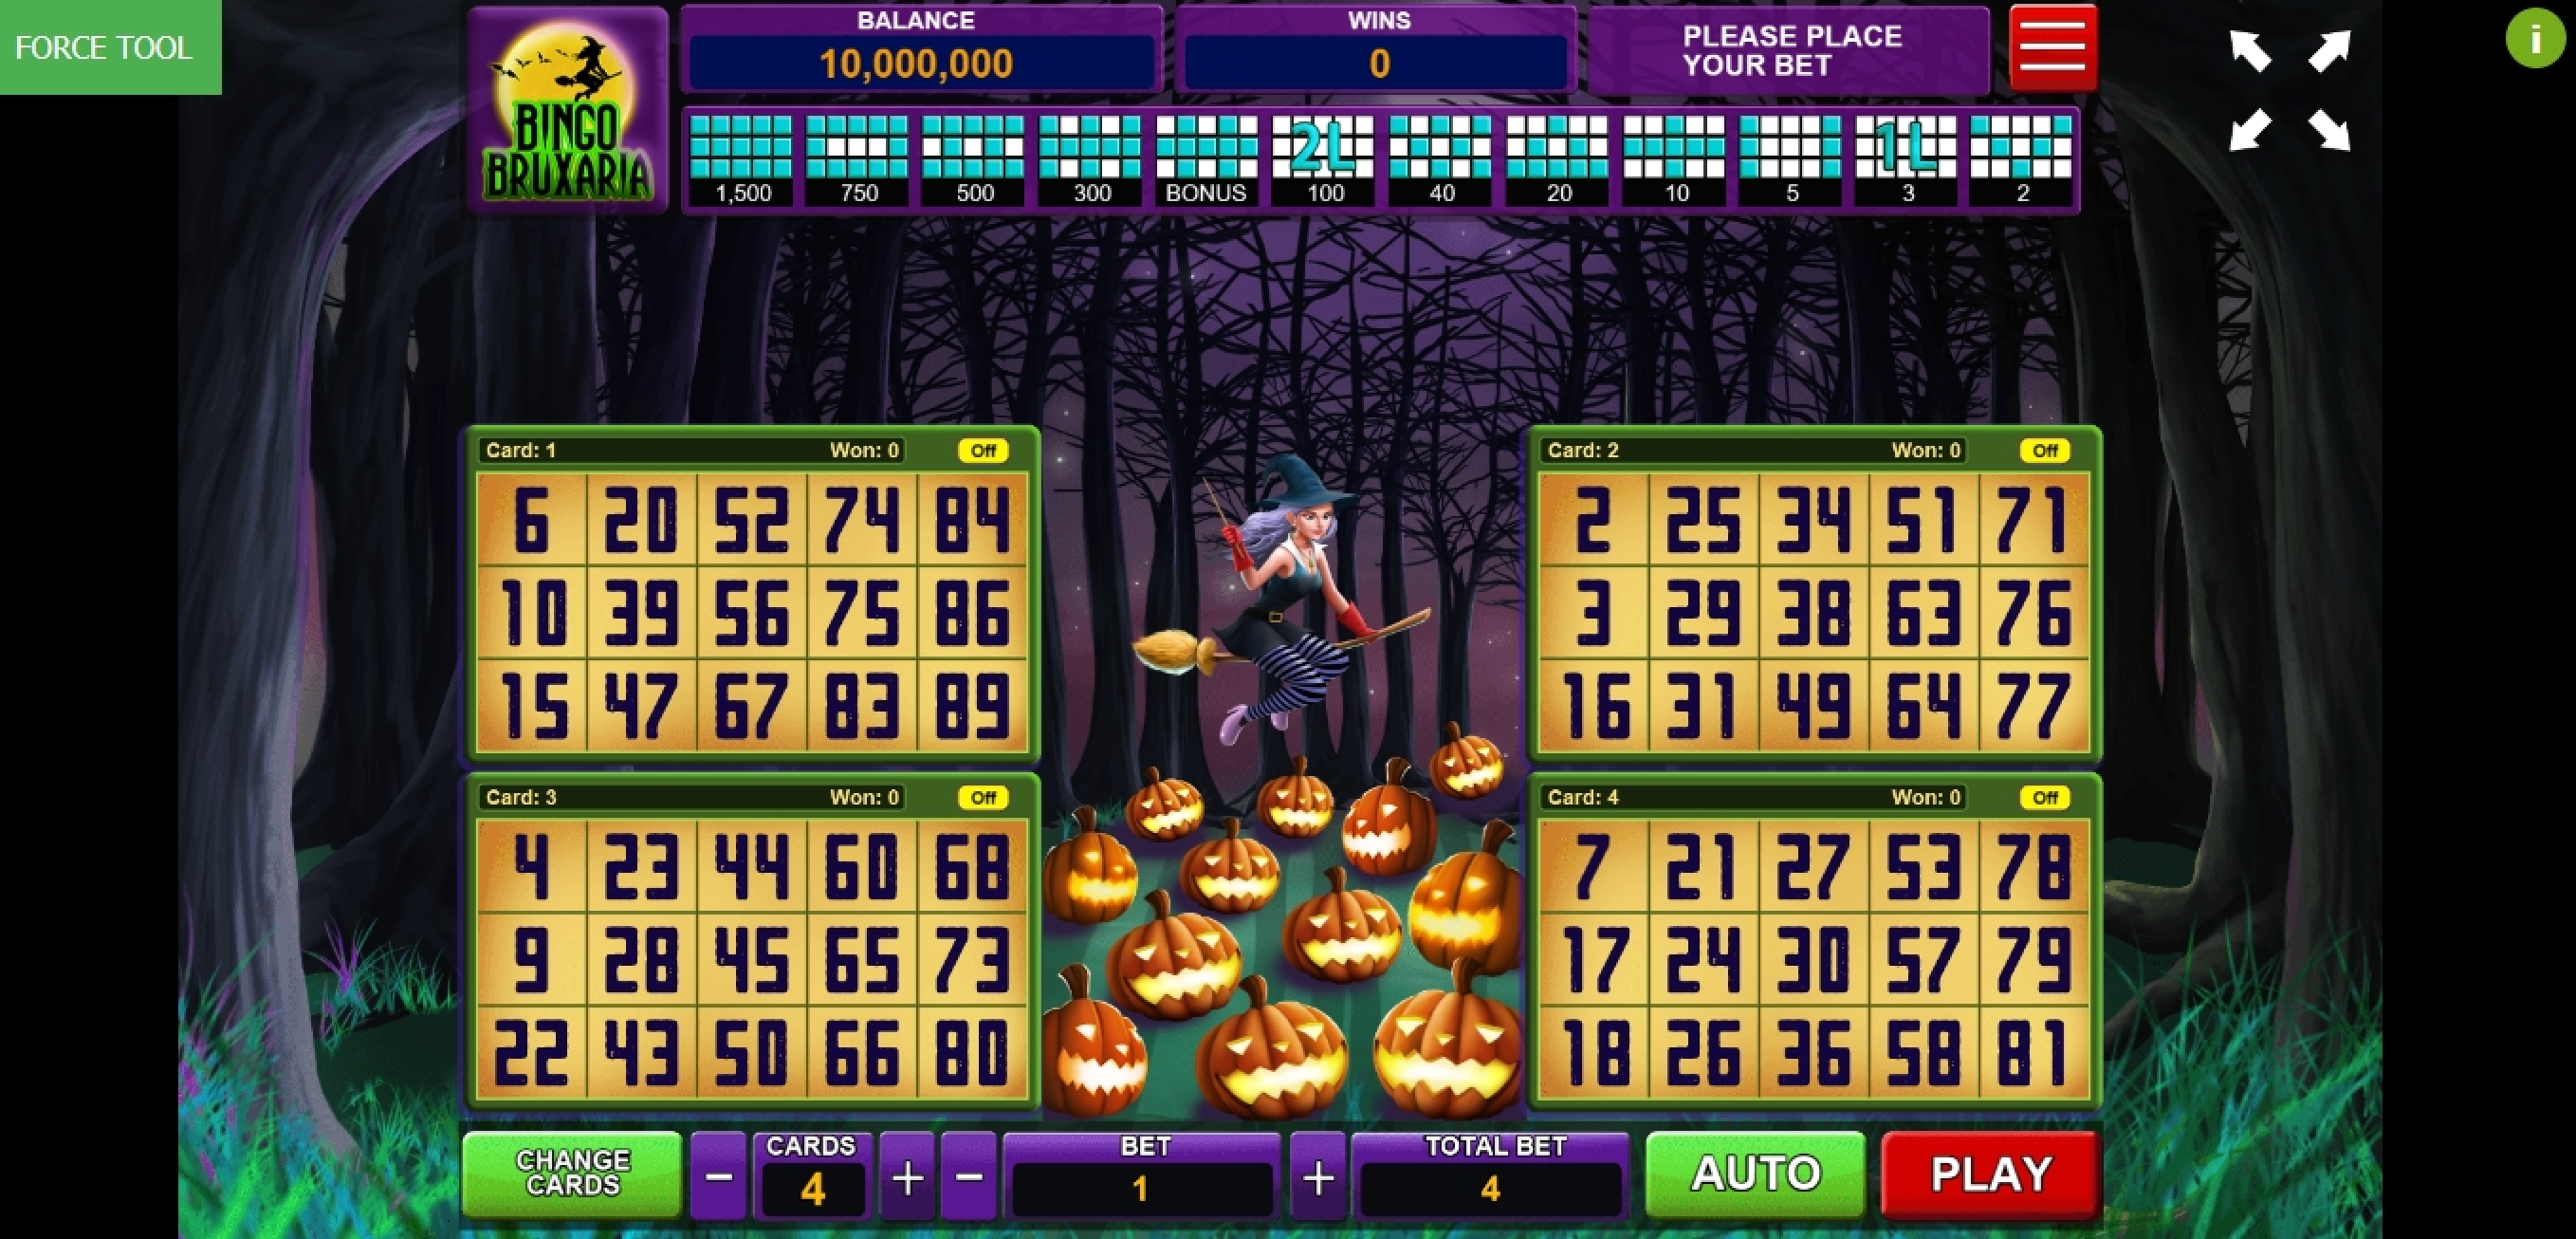 Reels in Bingo Bruxaria Slot Game by Caleta Gaming